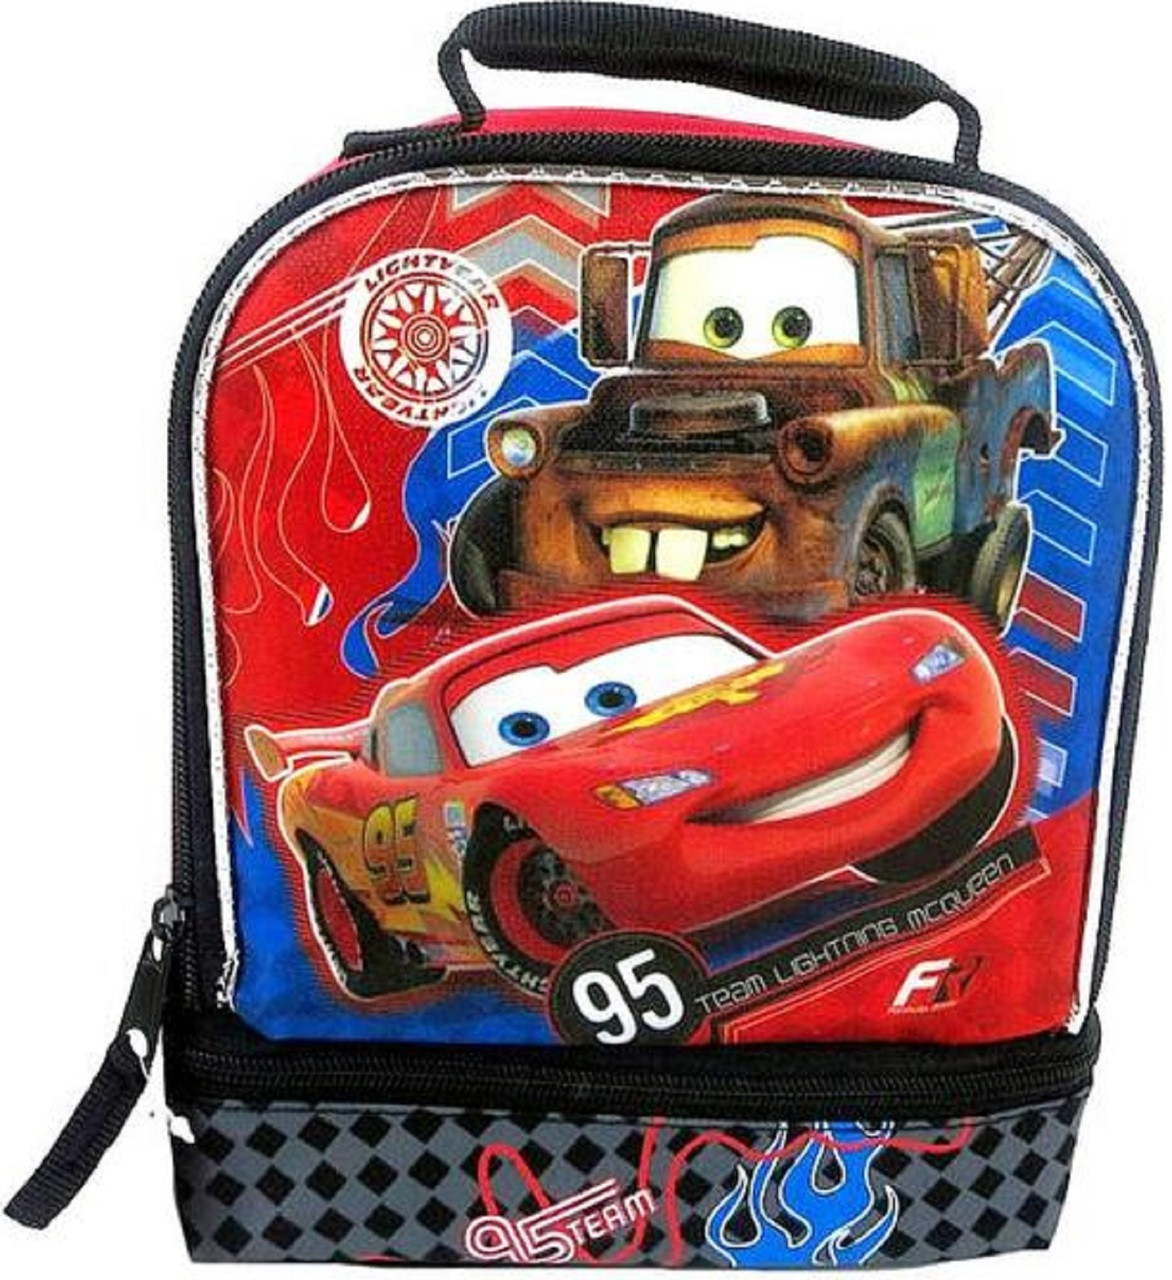 Disney Cars Lightning McQueen & Mater Insulated Lunch Bag Lunch Box